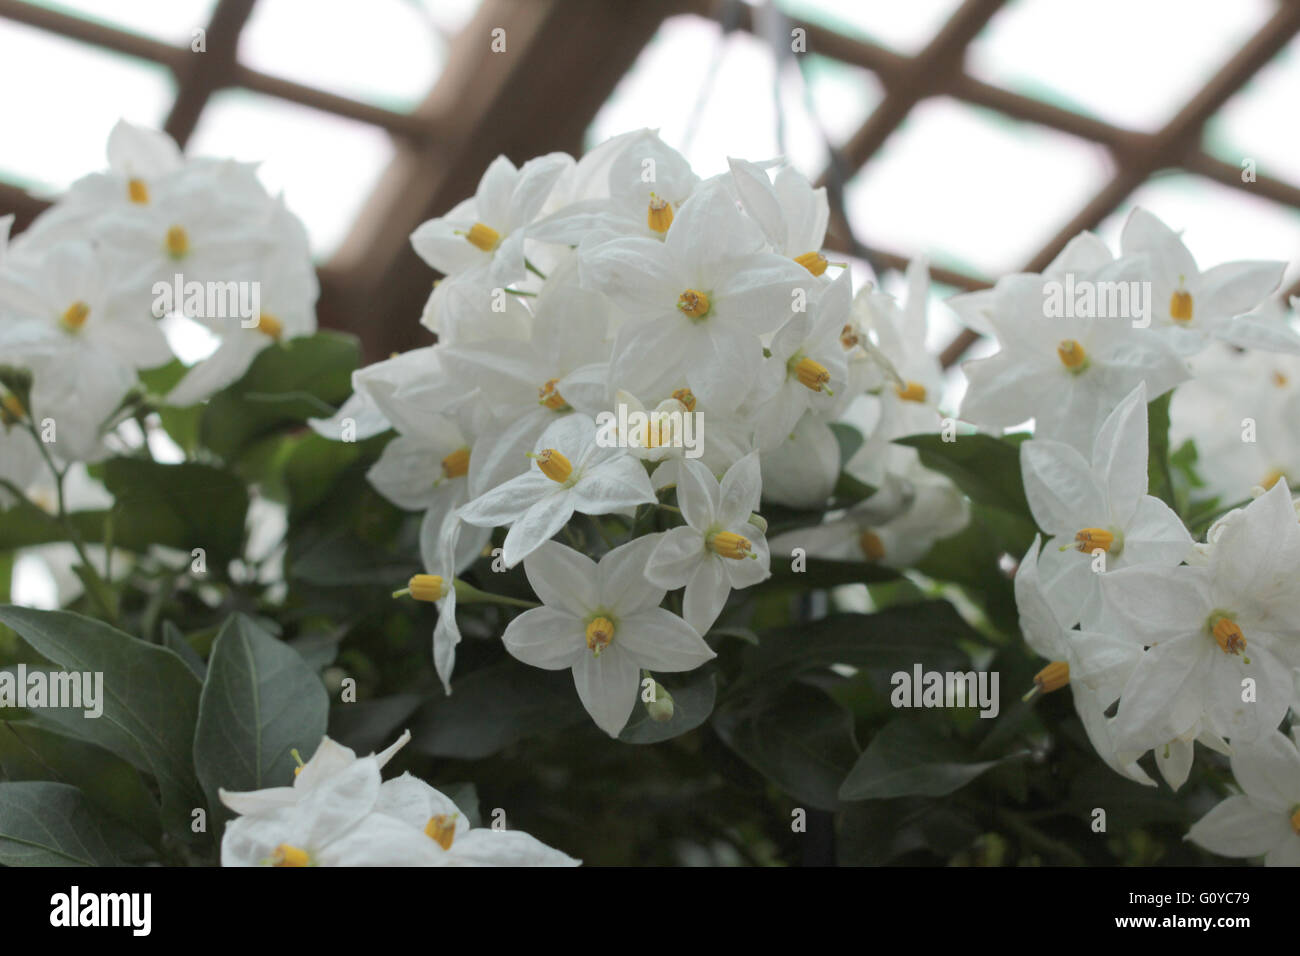 Star shaped flower stock photos star shaped flower stock images white star shaped flower with yellow button center stock image mightylinksfo